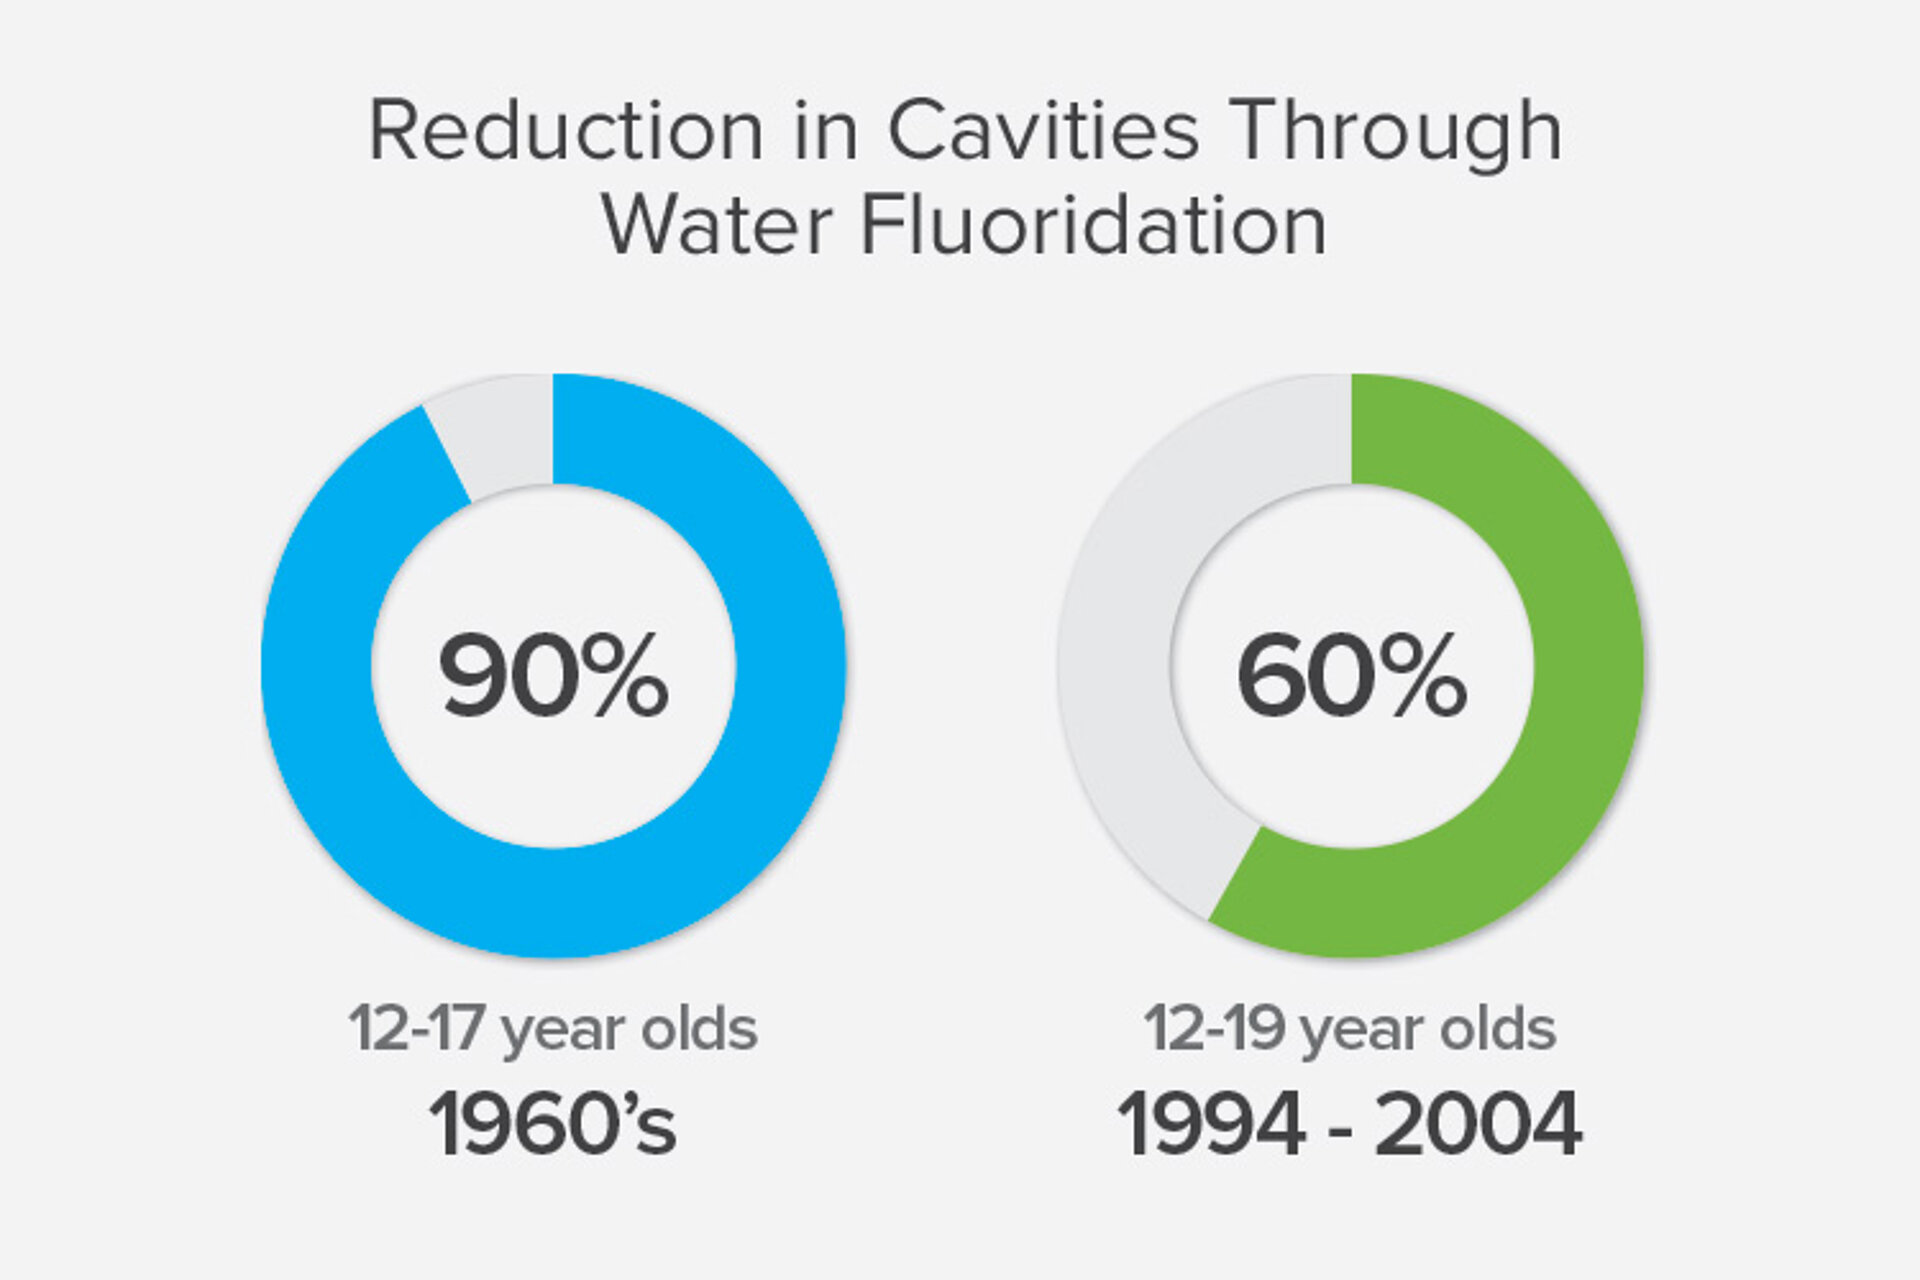 Reduction in cavities through water fluoridation